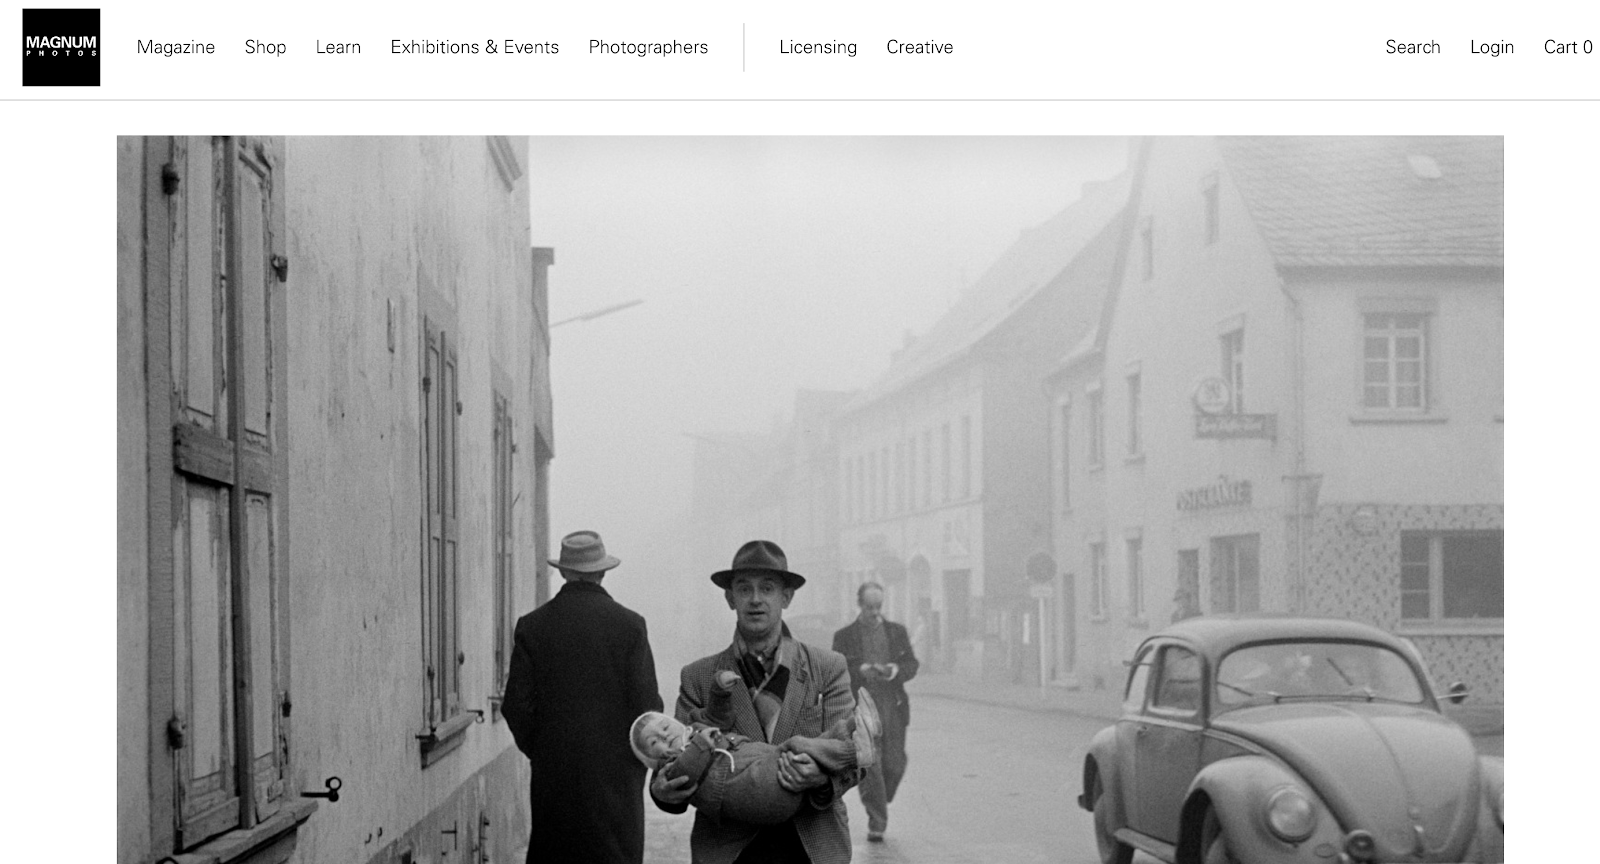 Magnum Photos Homepage Screenshot (Blog Layout Examples)